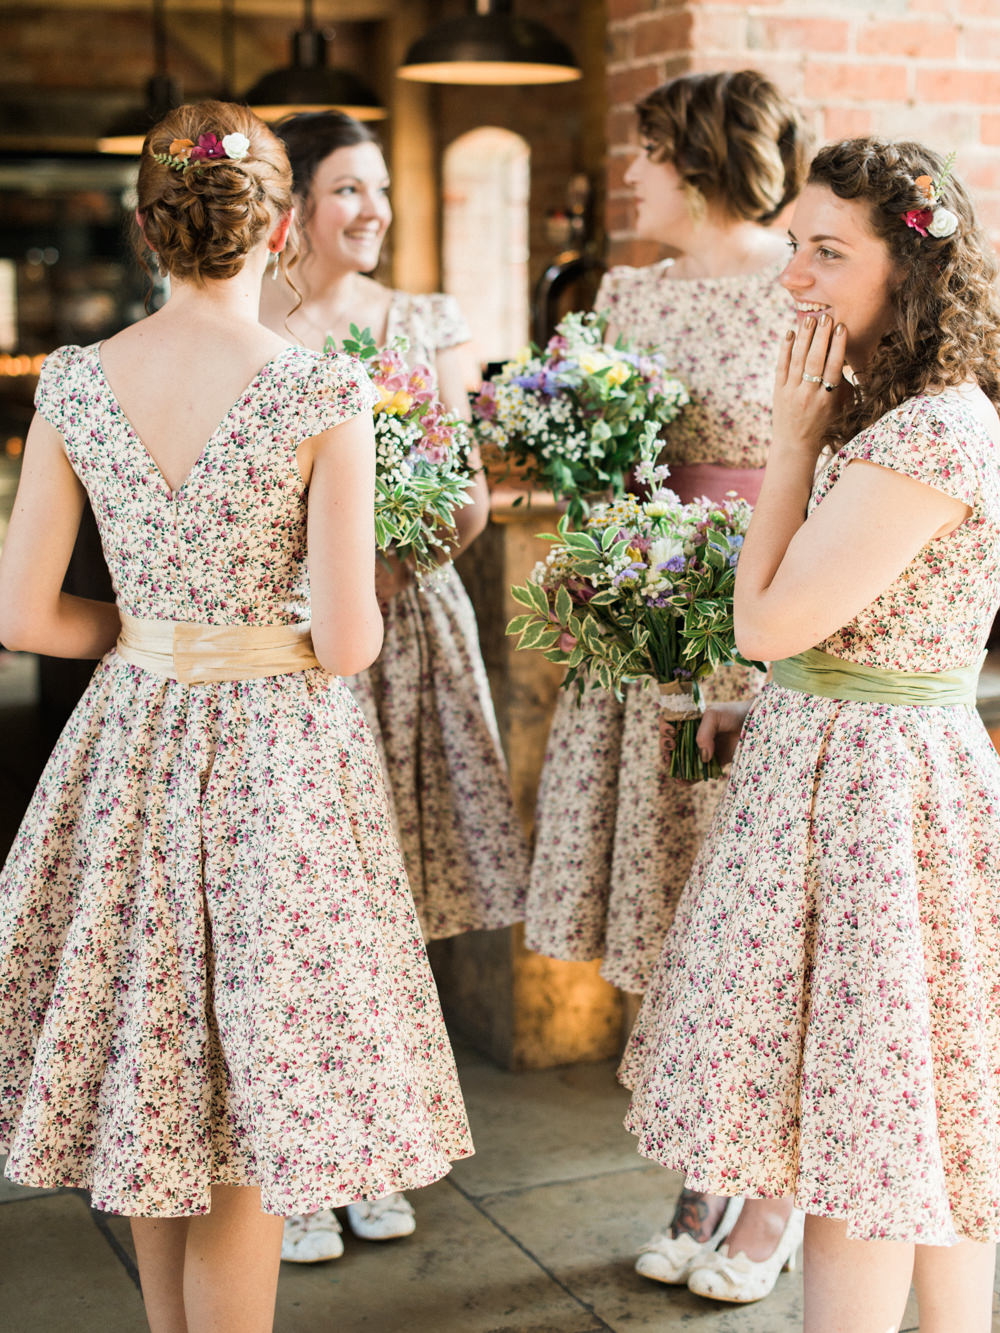 Rustic bridesmaid dresses good dresses ditsy print floral bridesmaid dresses rustic wedding at shustoke farm barn with floral bridesmaid dresses ombrellifo Choice Image